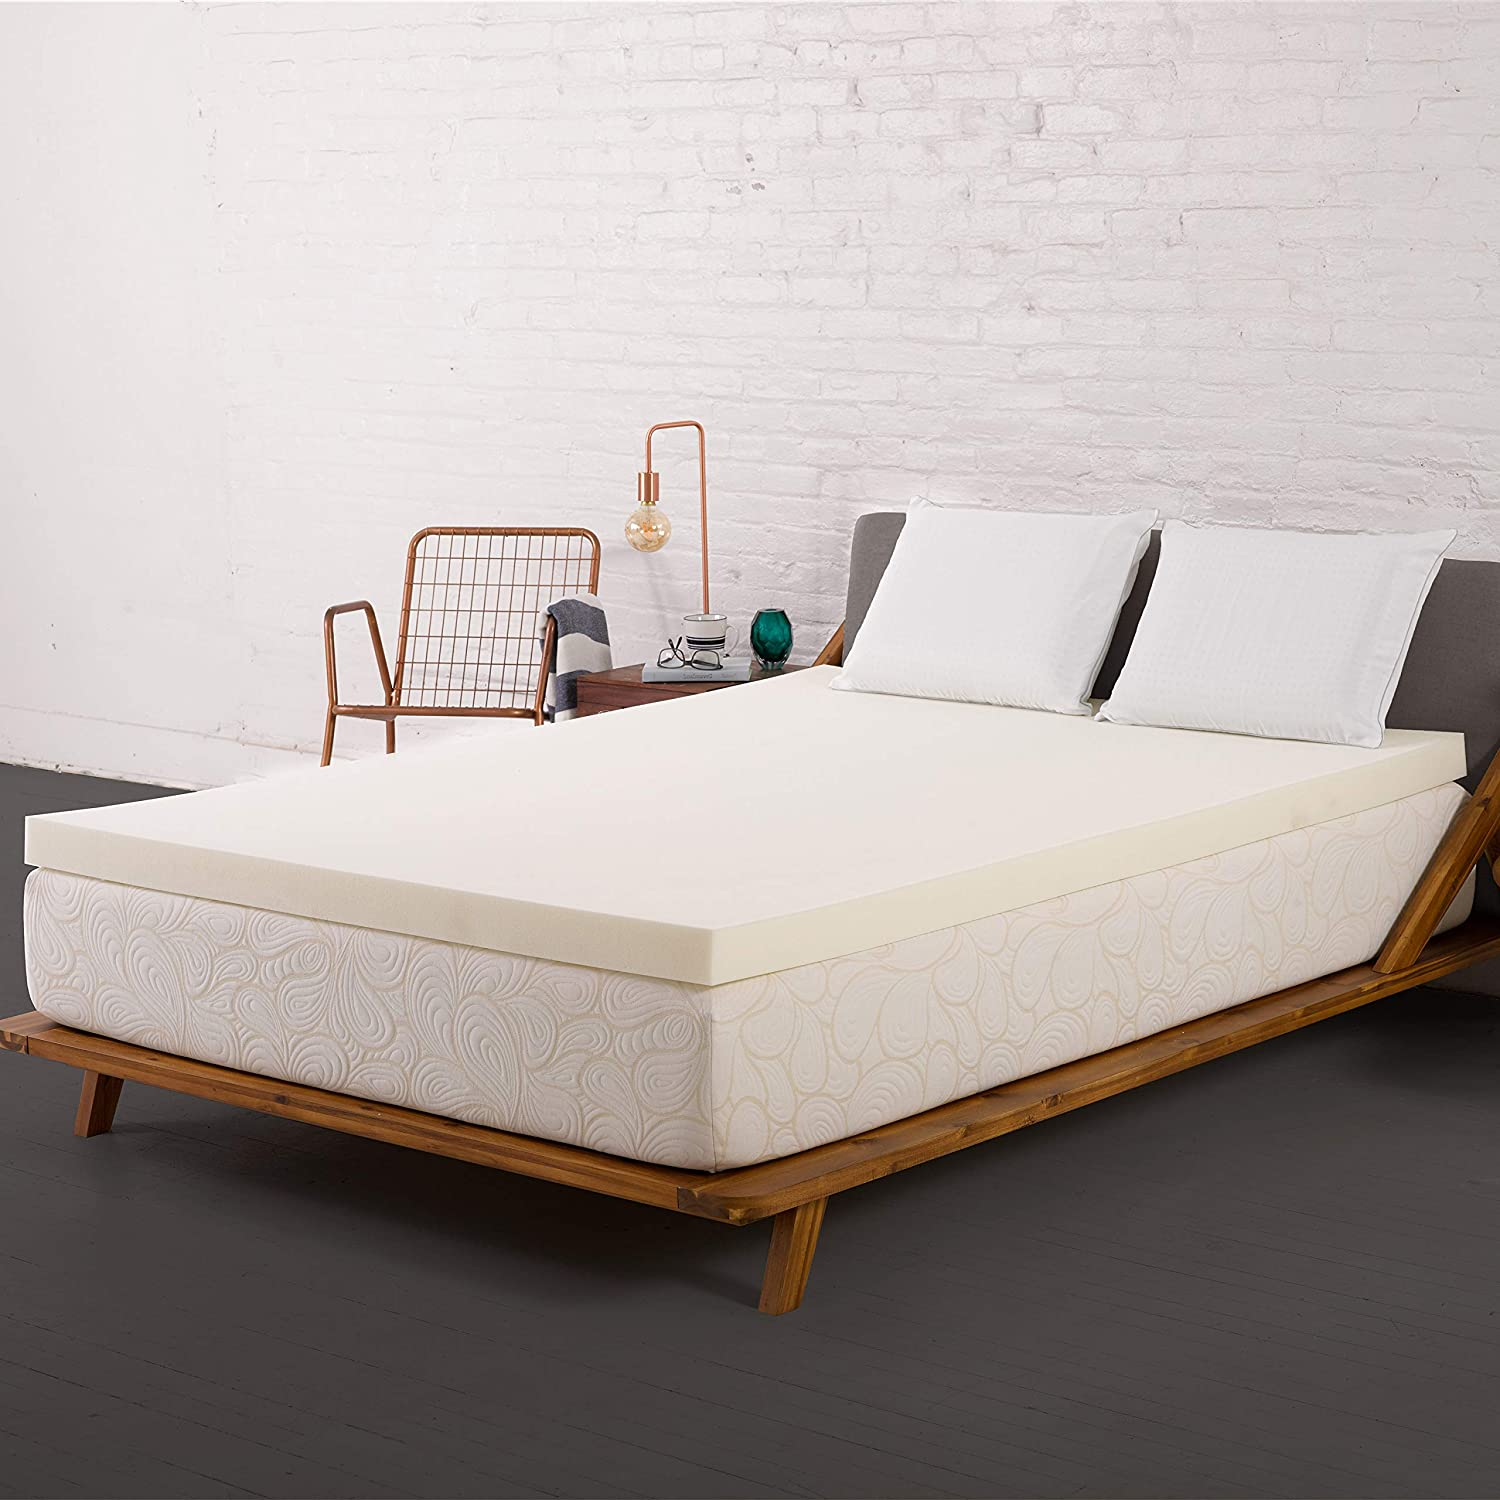 SleepJoy 2-inch ViscO2 Memory Foam Mattress Topper with Breathable Design, Made in The USA Queen Size